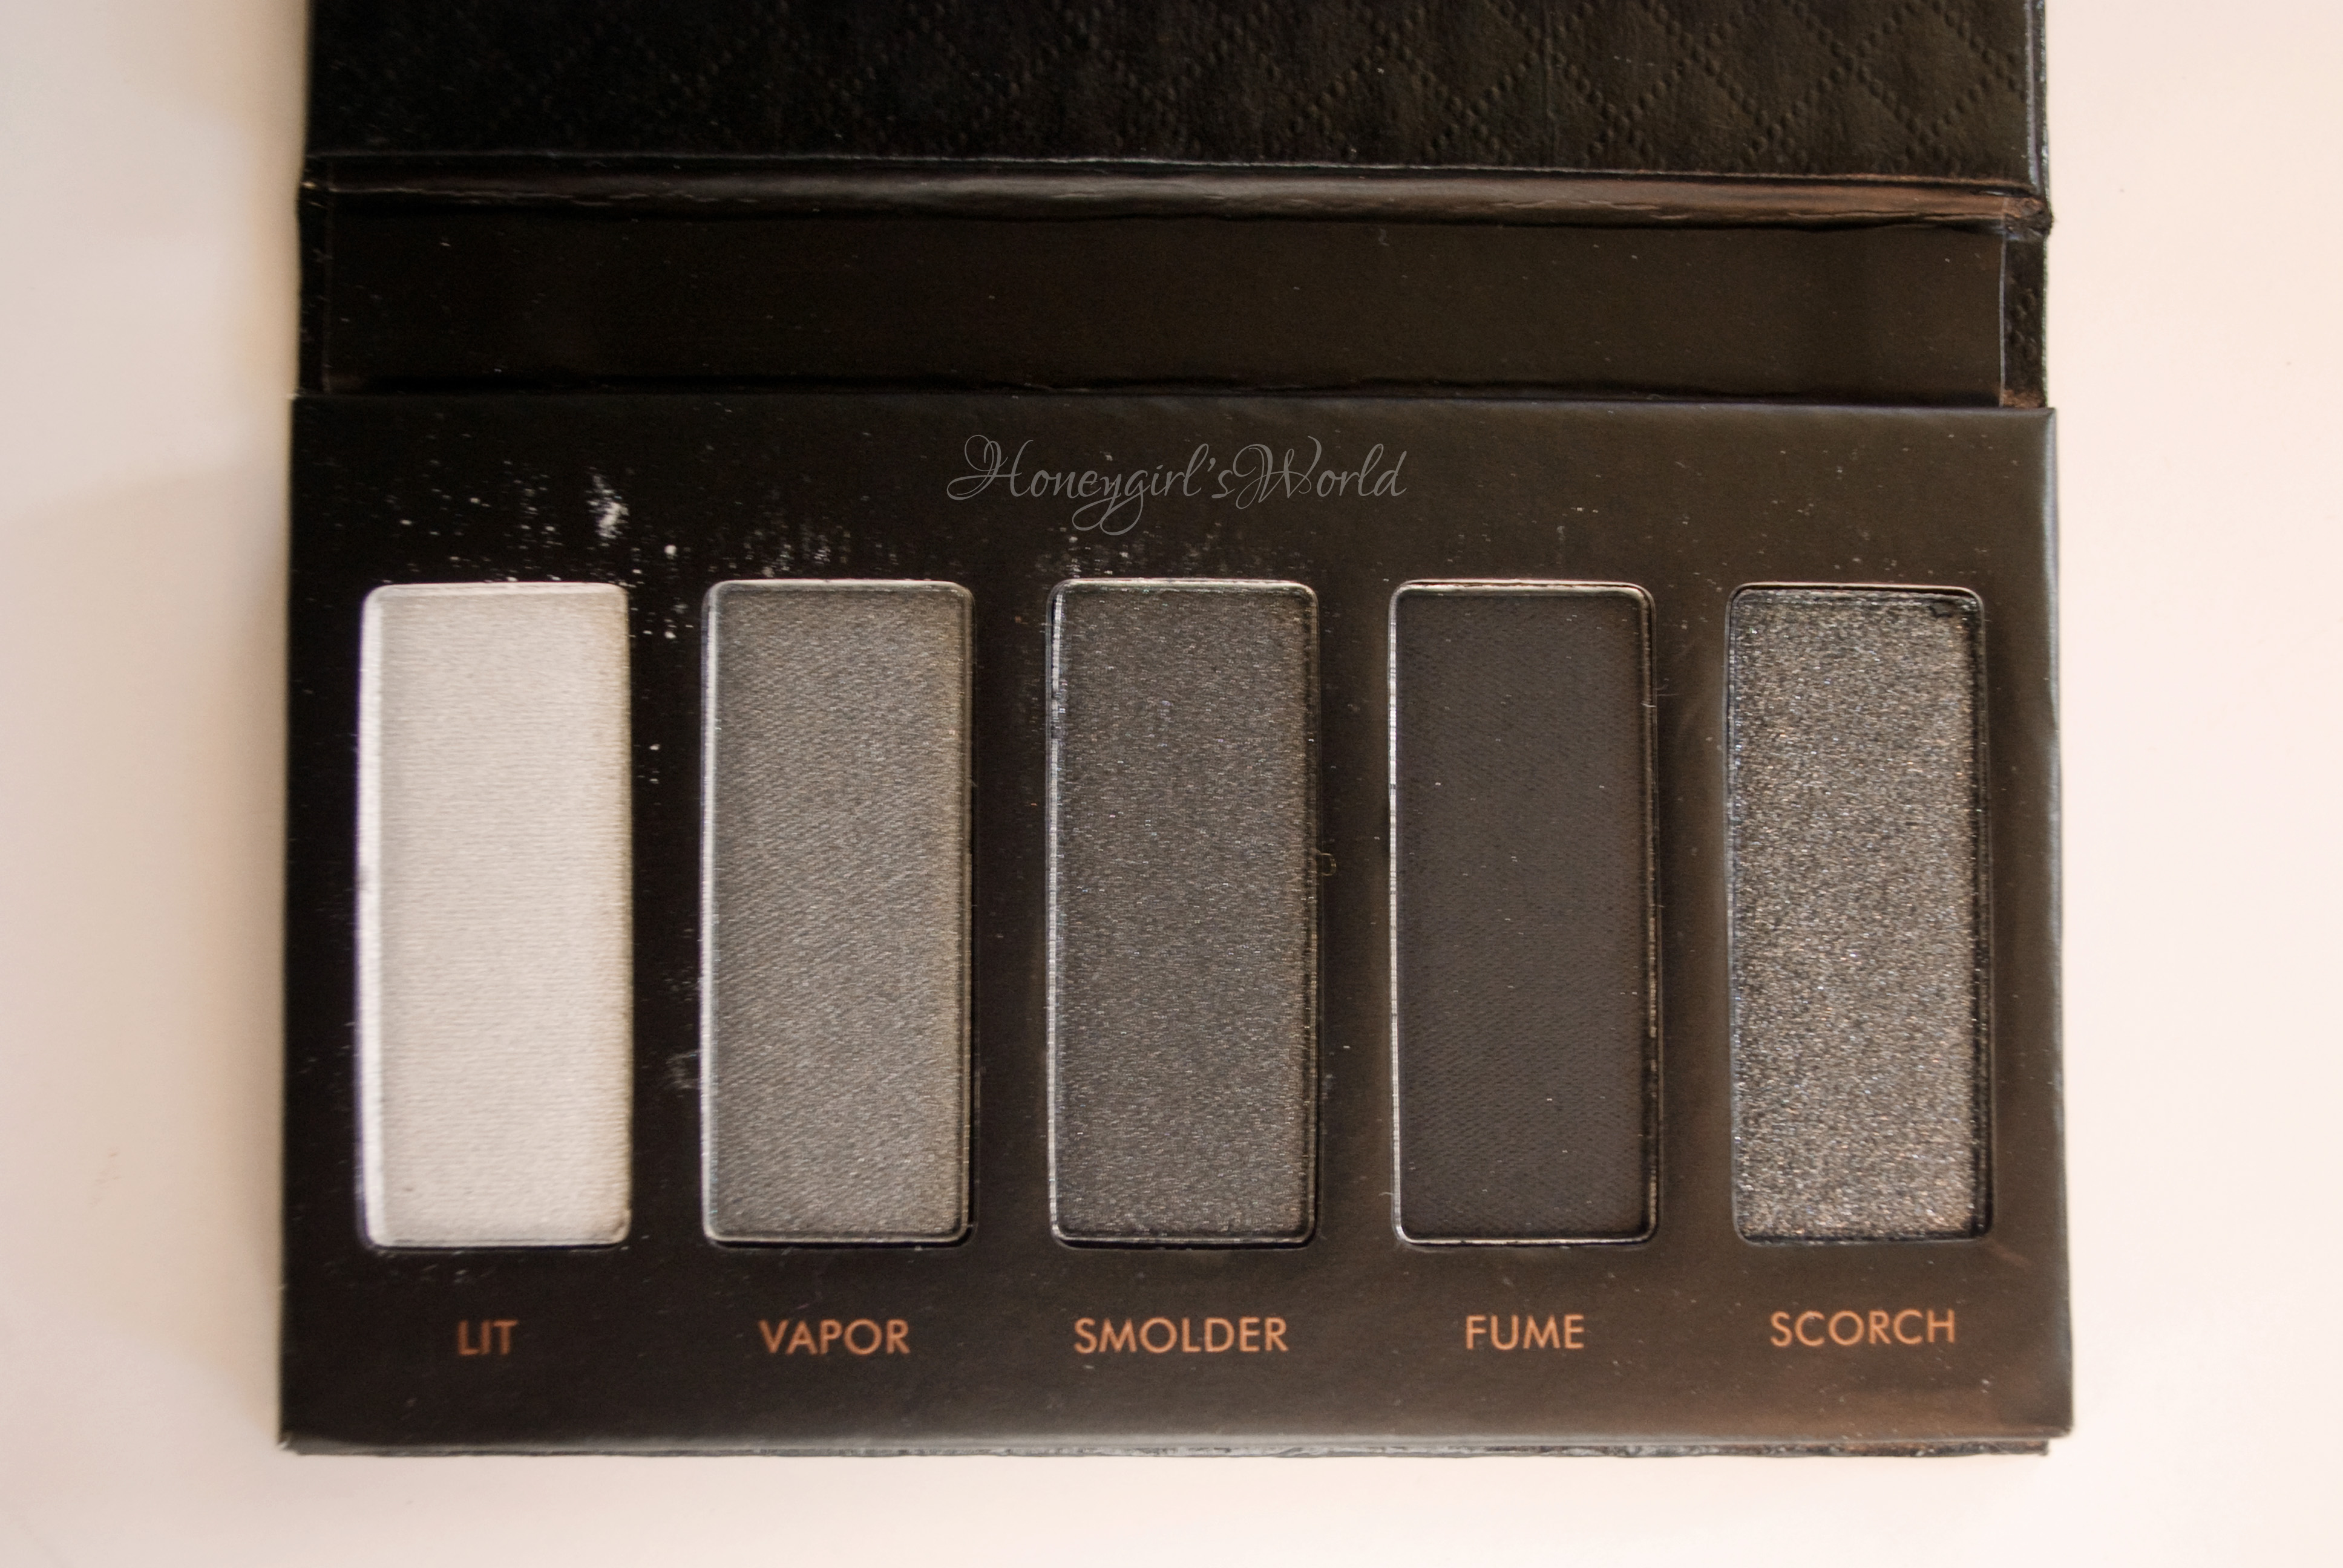 Borghese Five Shades of Sultry Eye Shadow